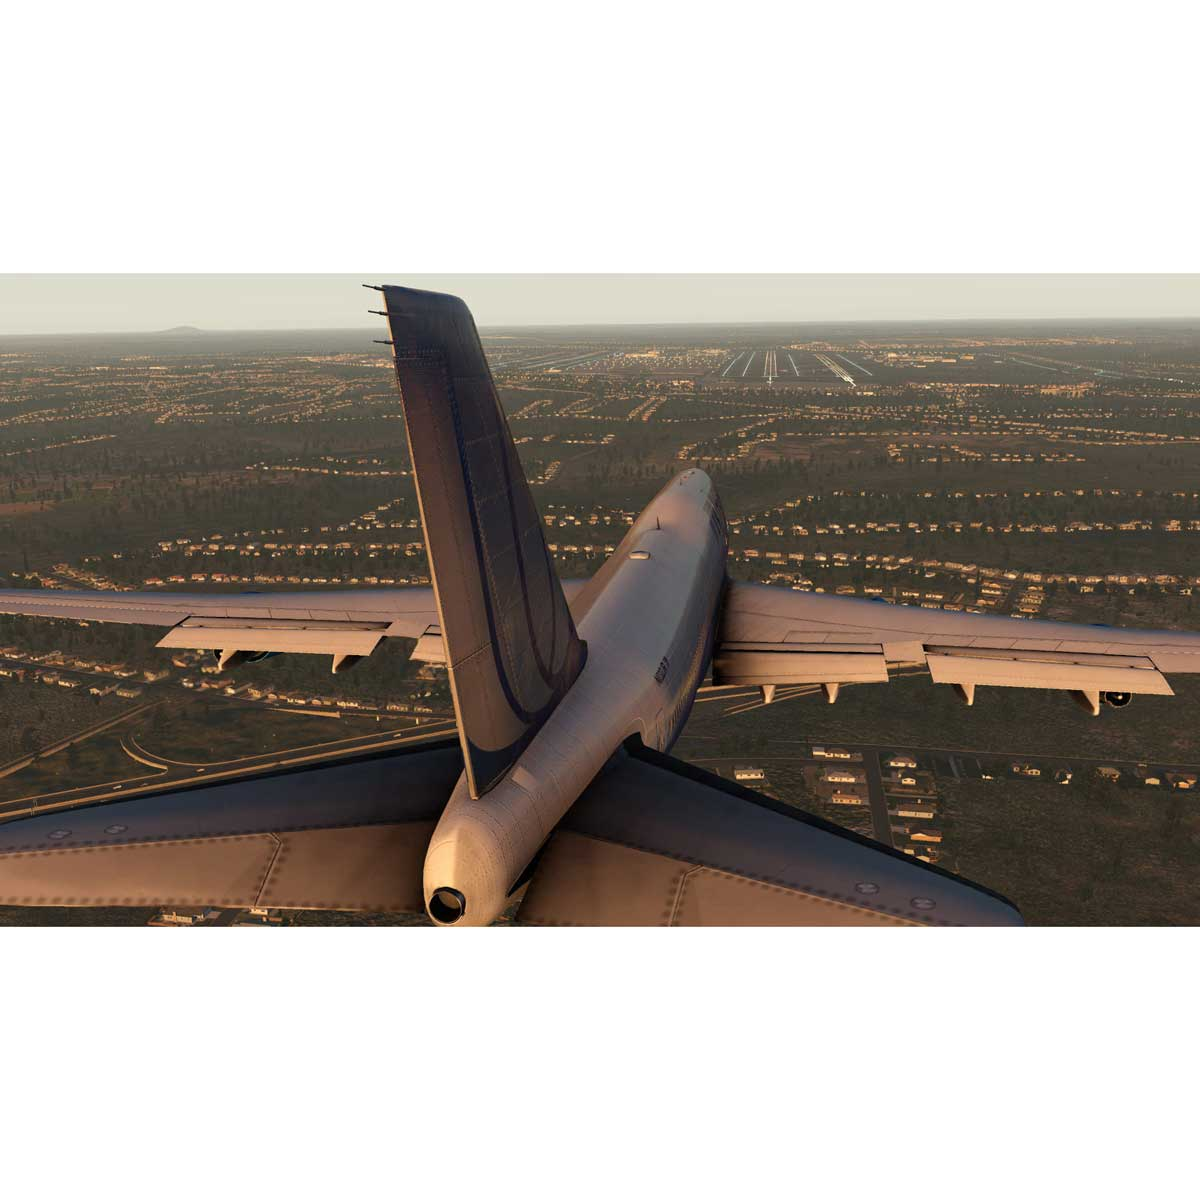 X plane 11 global scenery north america download | RELEASED: HD Mesh